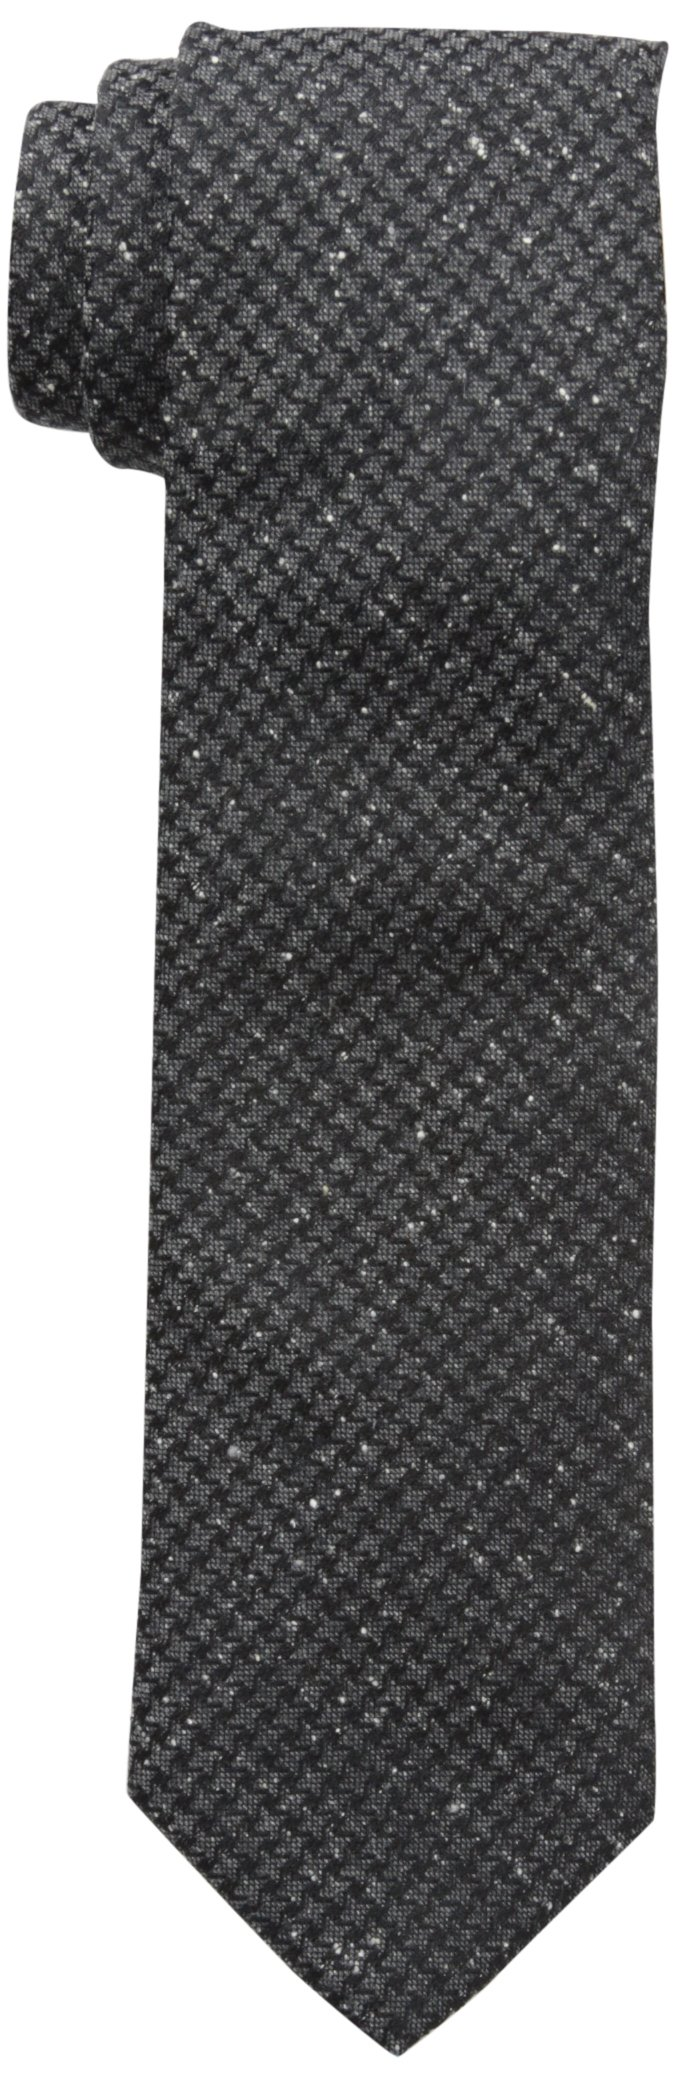 Jack Spade Men's Wool Silk Dogtooth Donegal Tie, Grey, Total Quantity